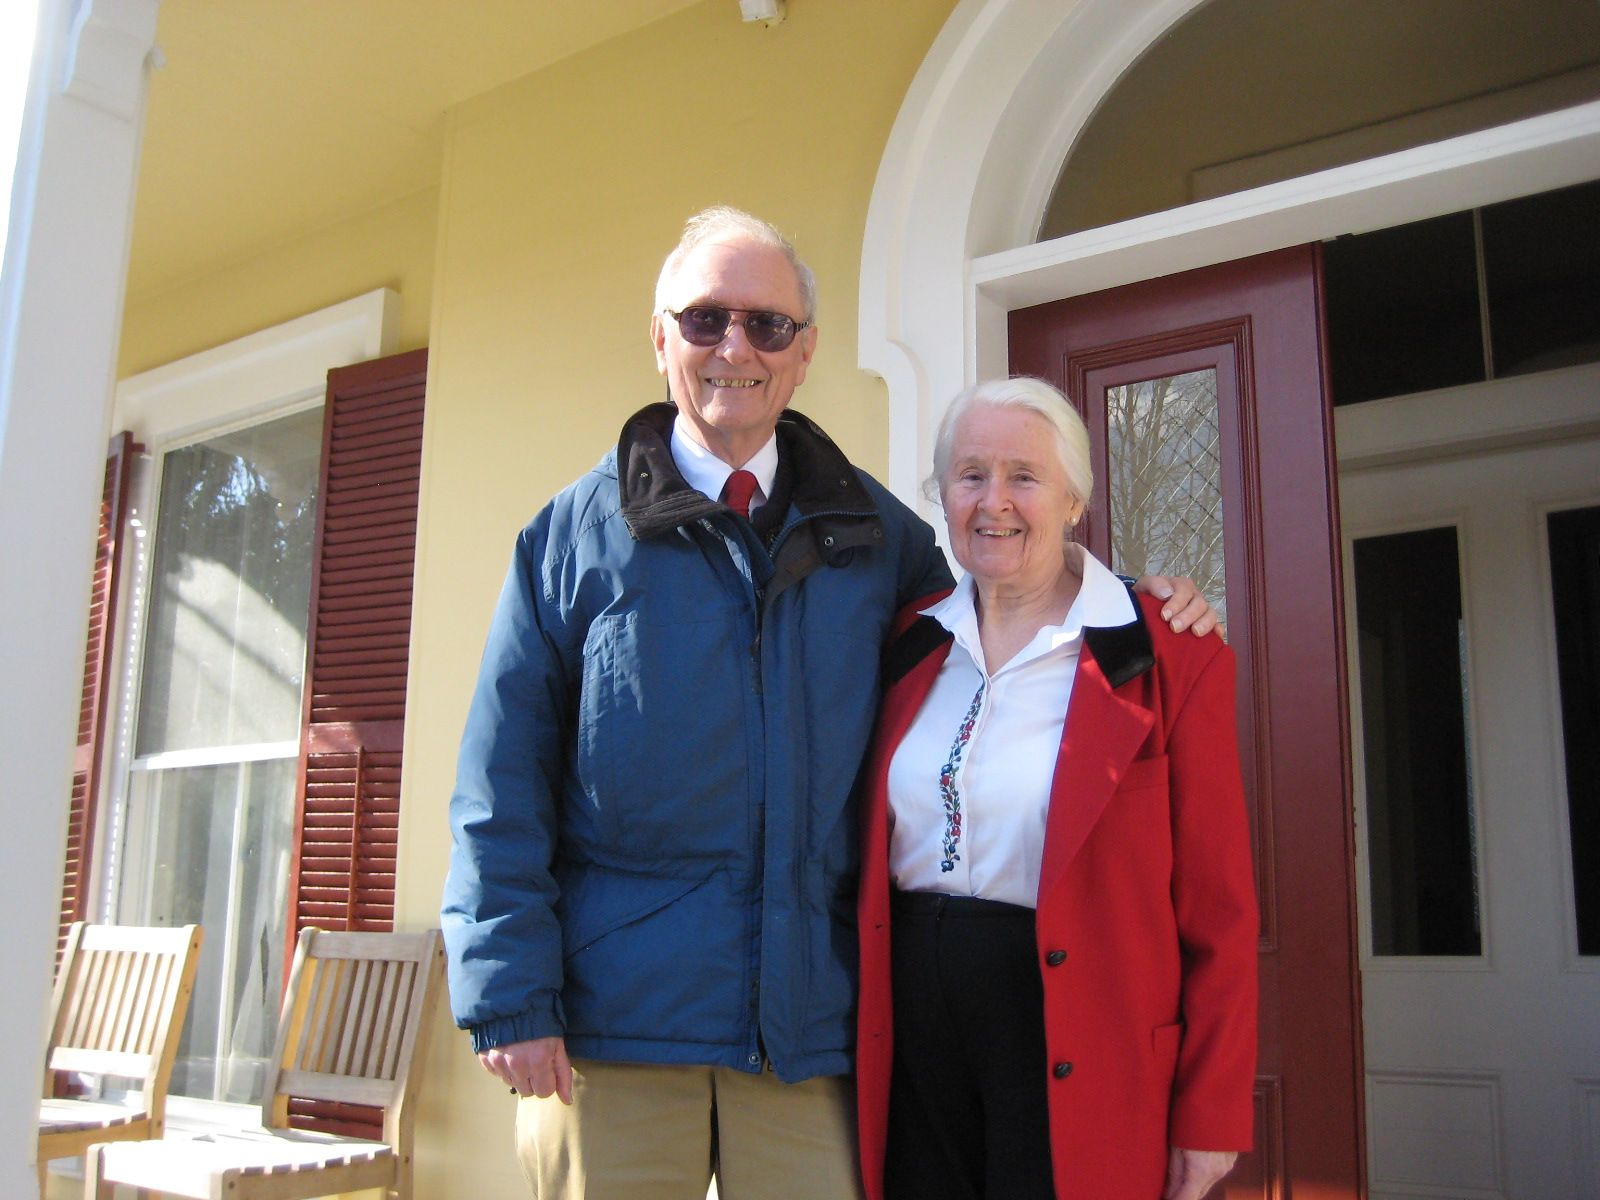 Lunch with Eugenie and Jon Shaw '55 in Sandwich February 12, 2013.